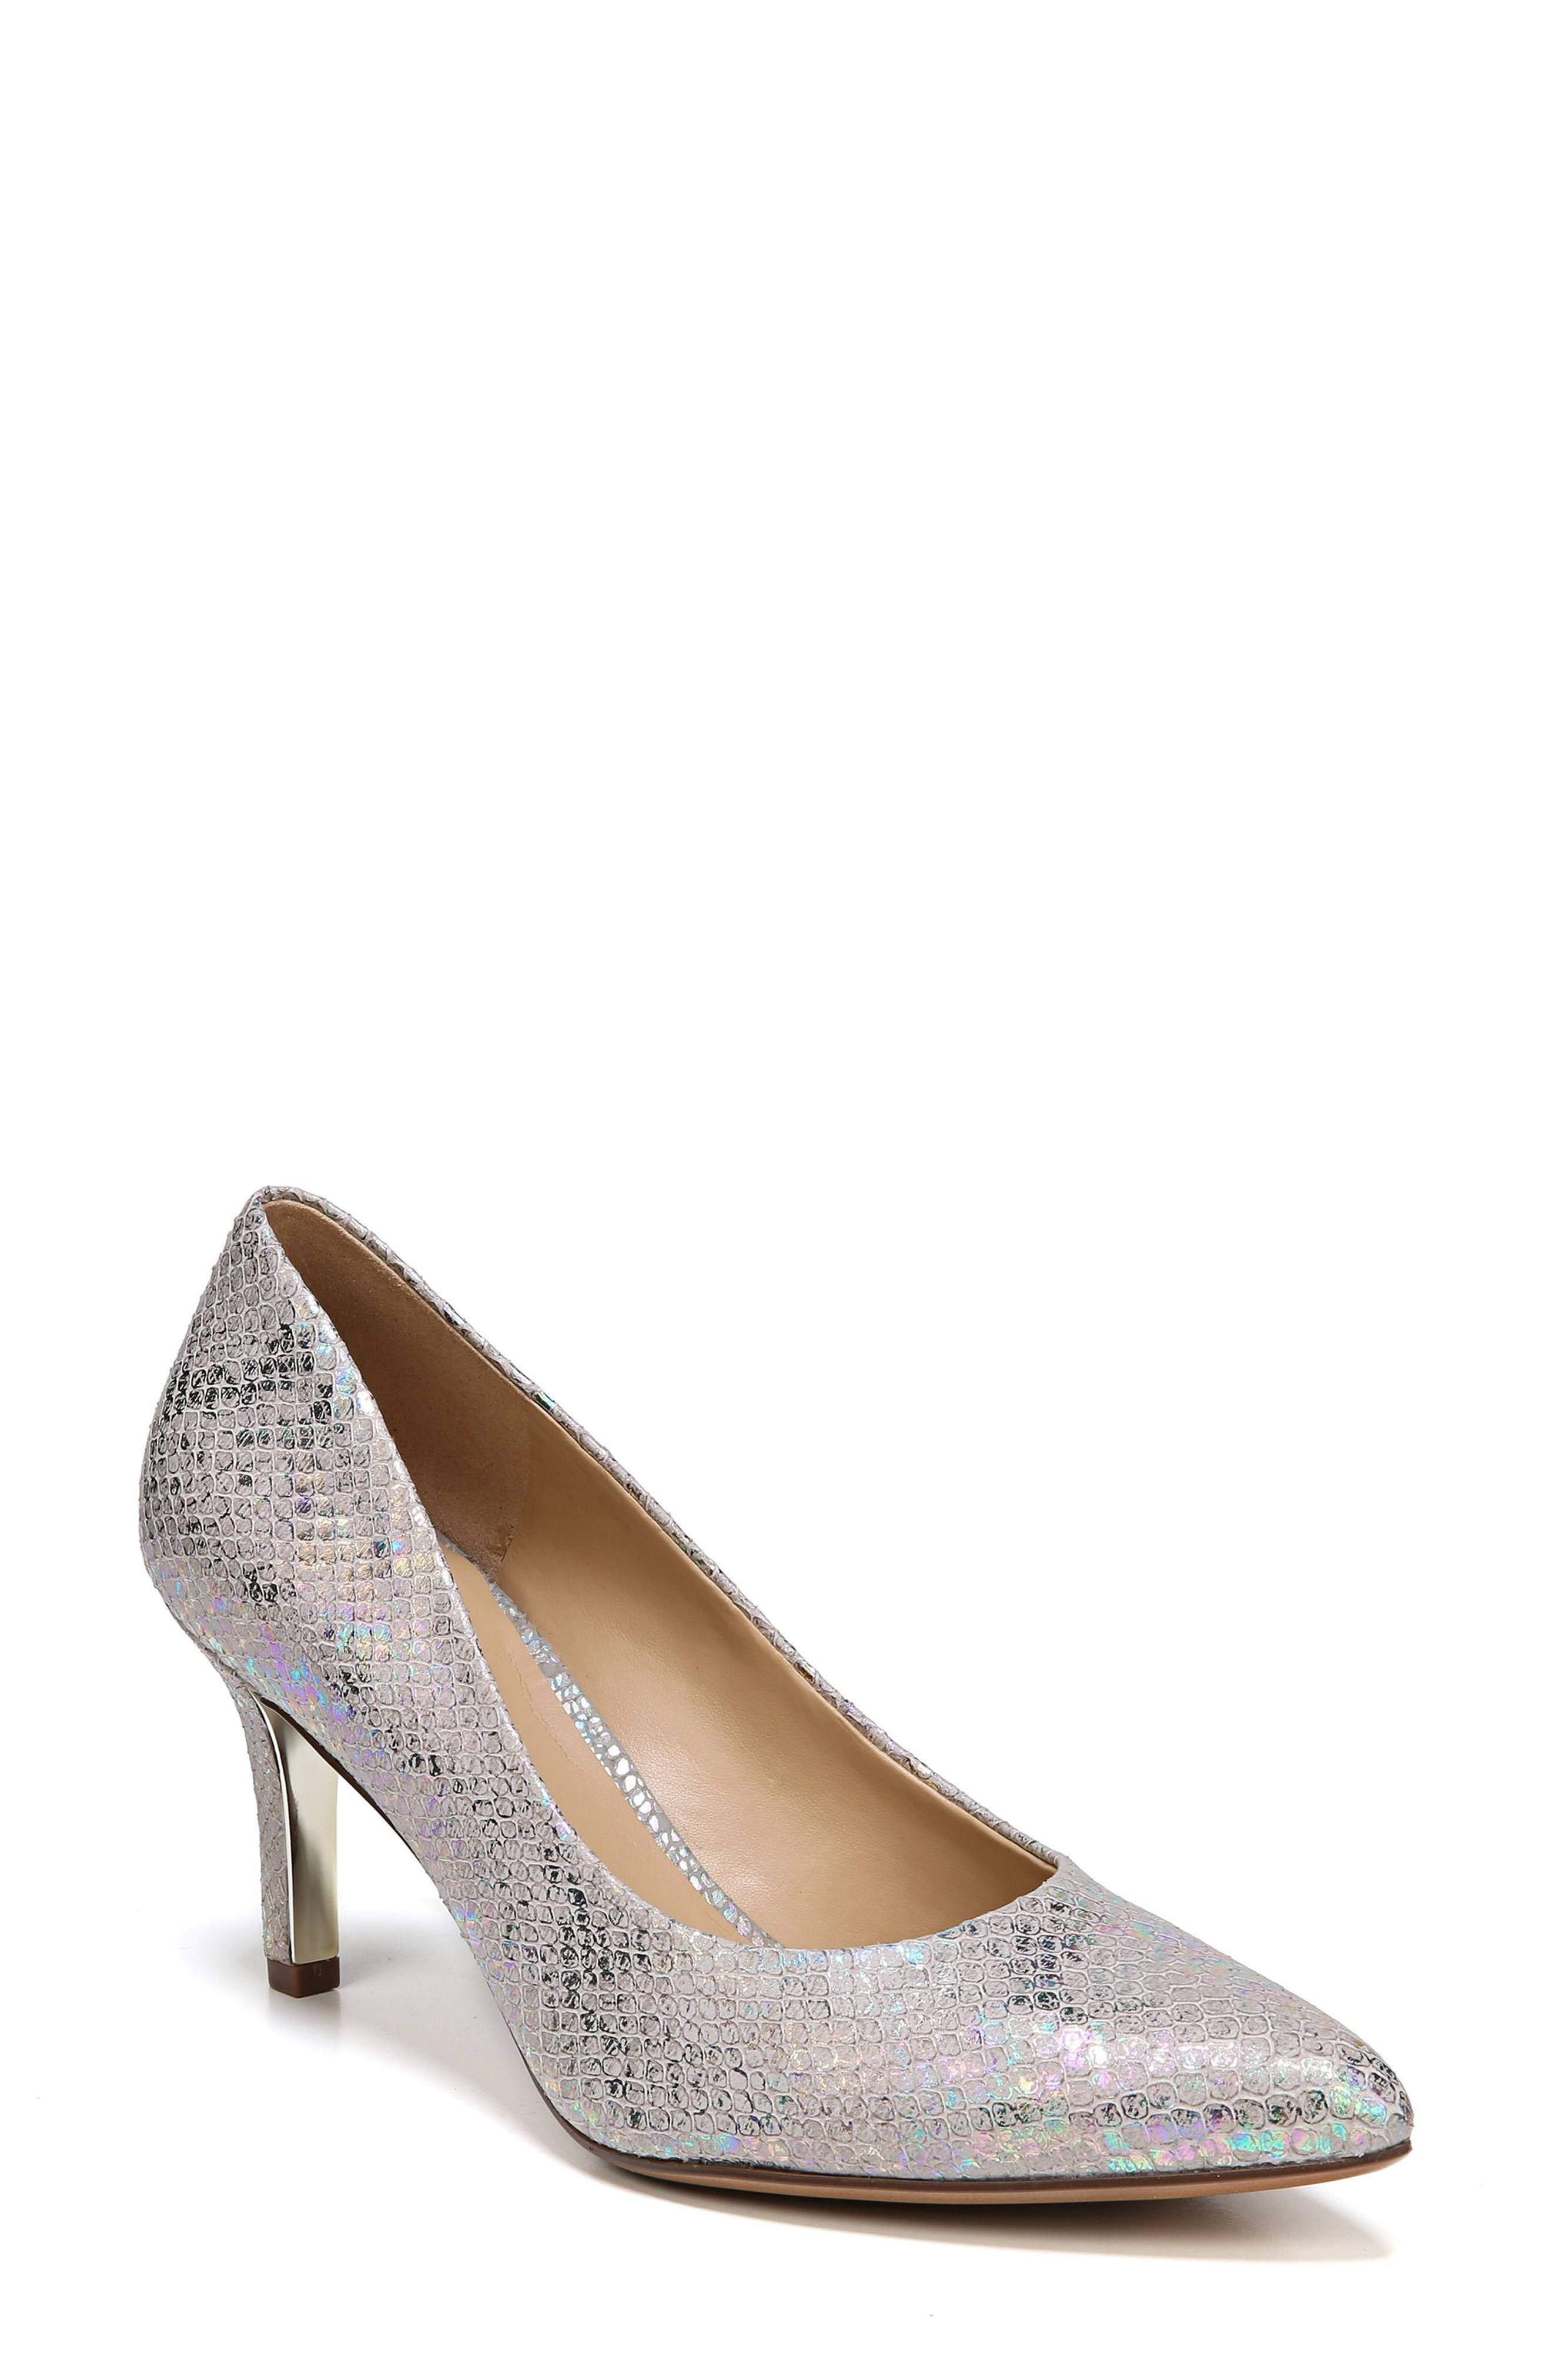 Natalie Pointy Toe Pump,                             Main thumbnail 1, color,                             Silver Snake Print Leather